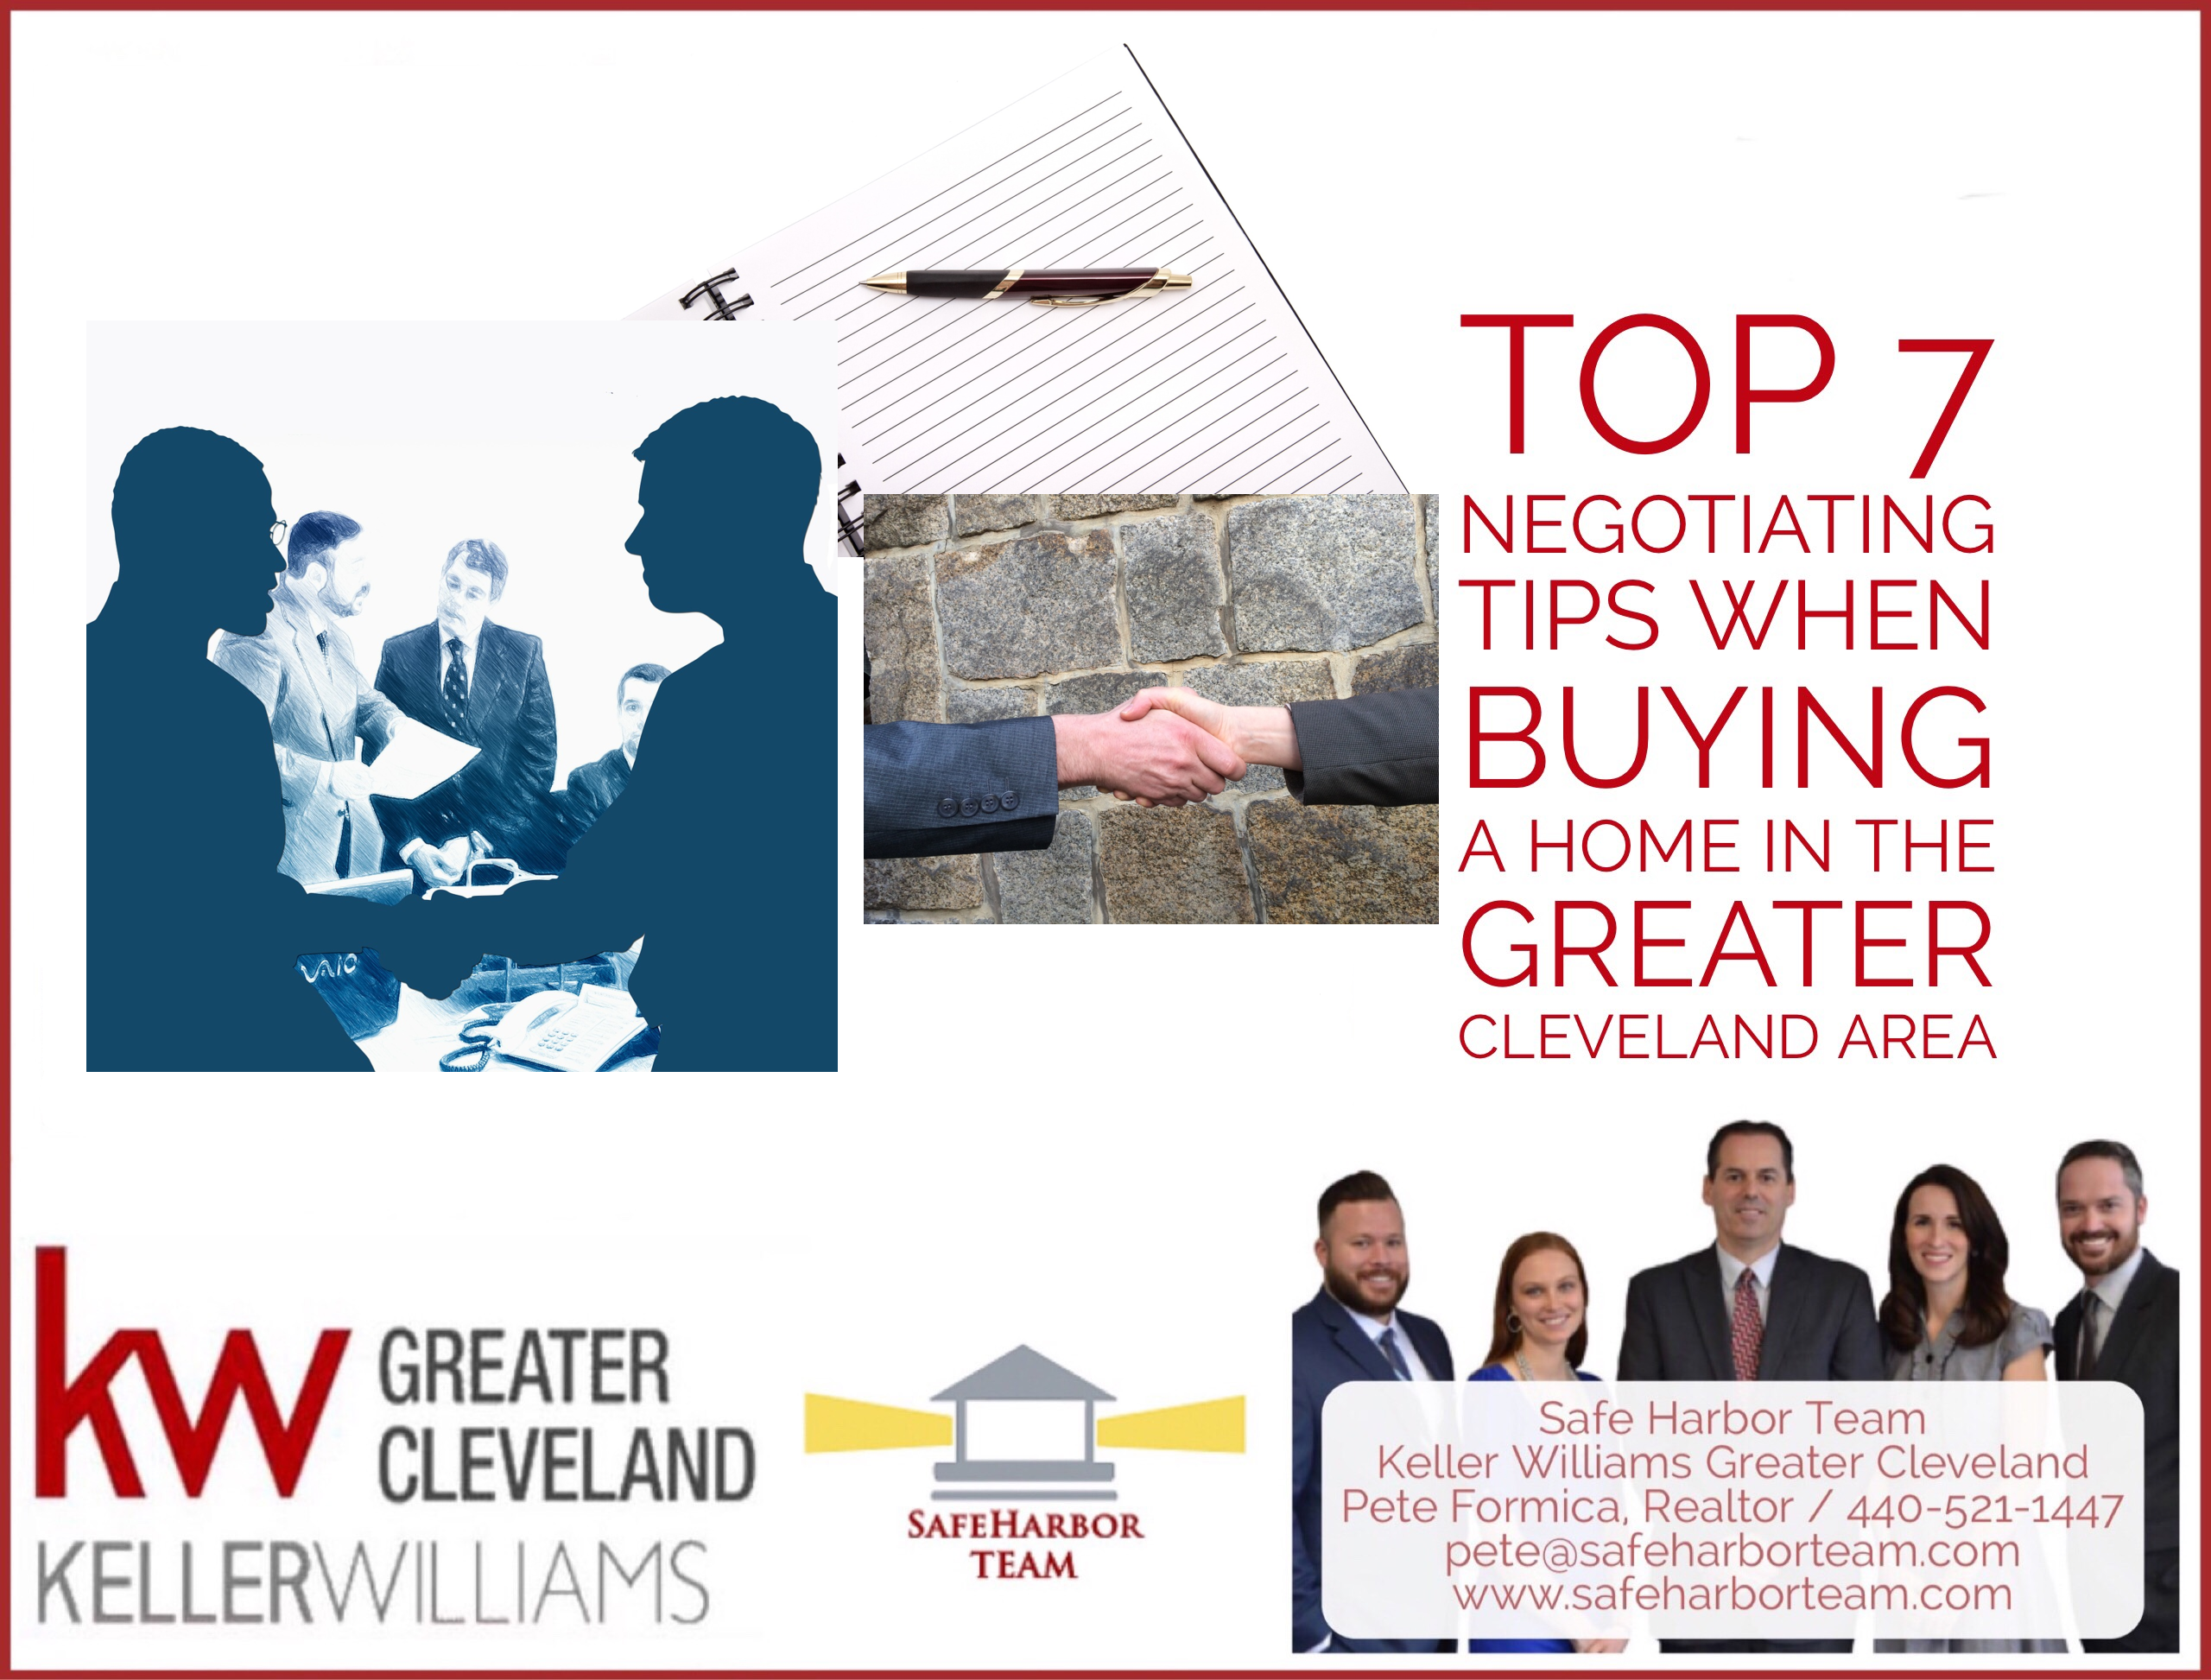 Top 7 Negotiating Tips When Buying a Home in the Greater Cleveland Area